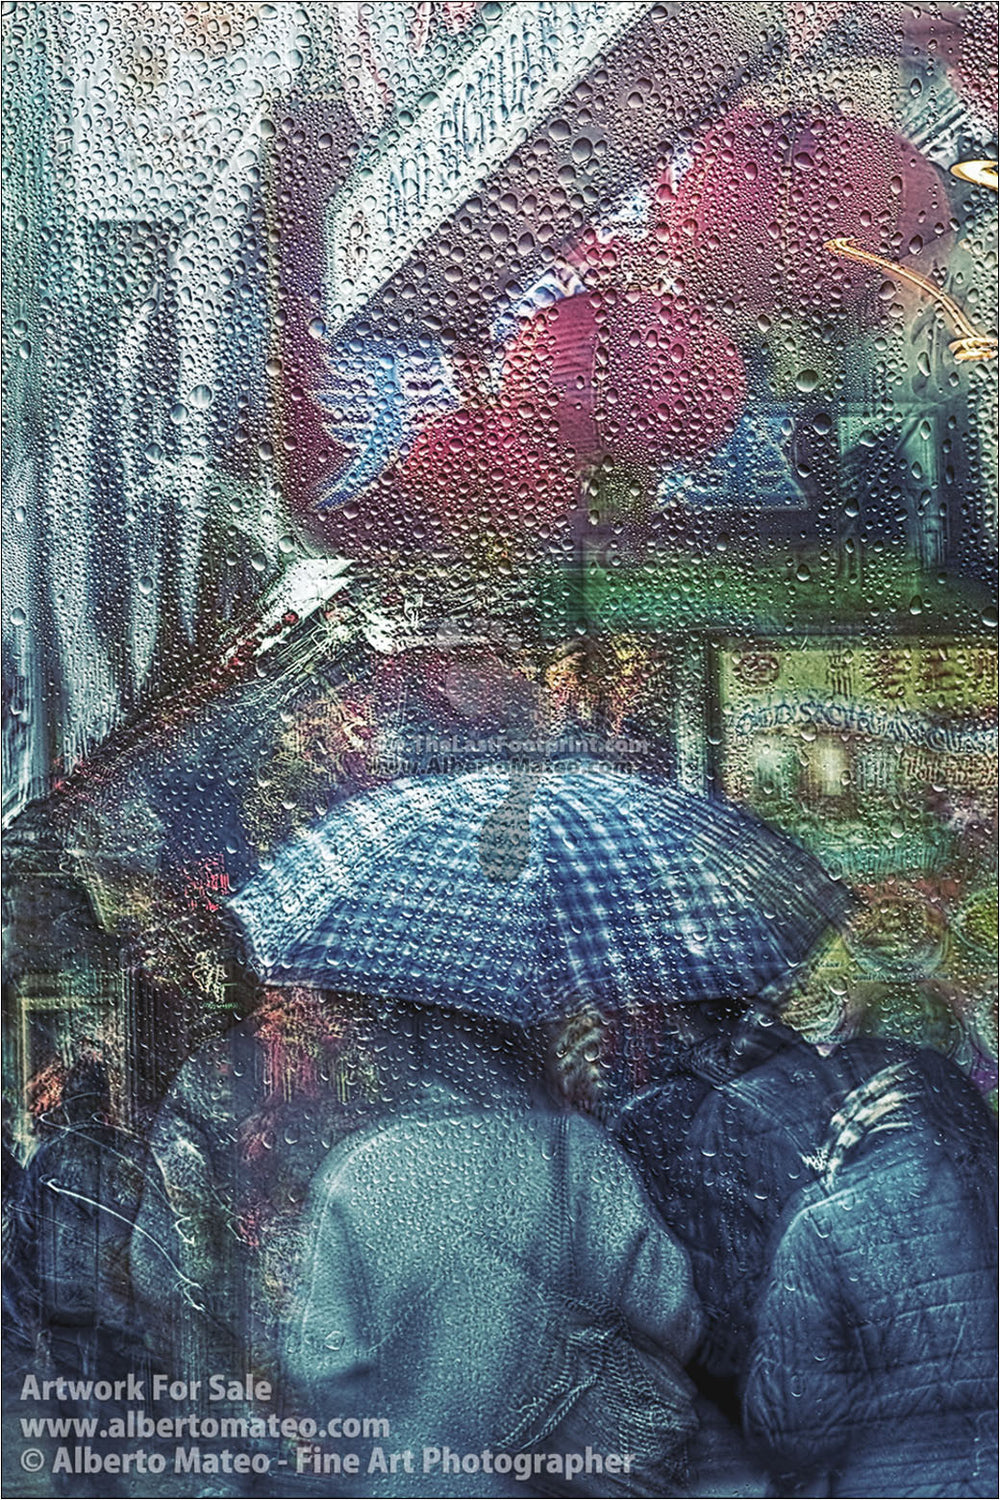 Rain in Chinatown, New York. [1/3] | New York Through the Rain Series. | Limited Edition Print.